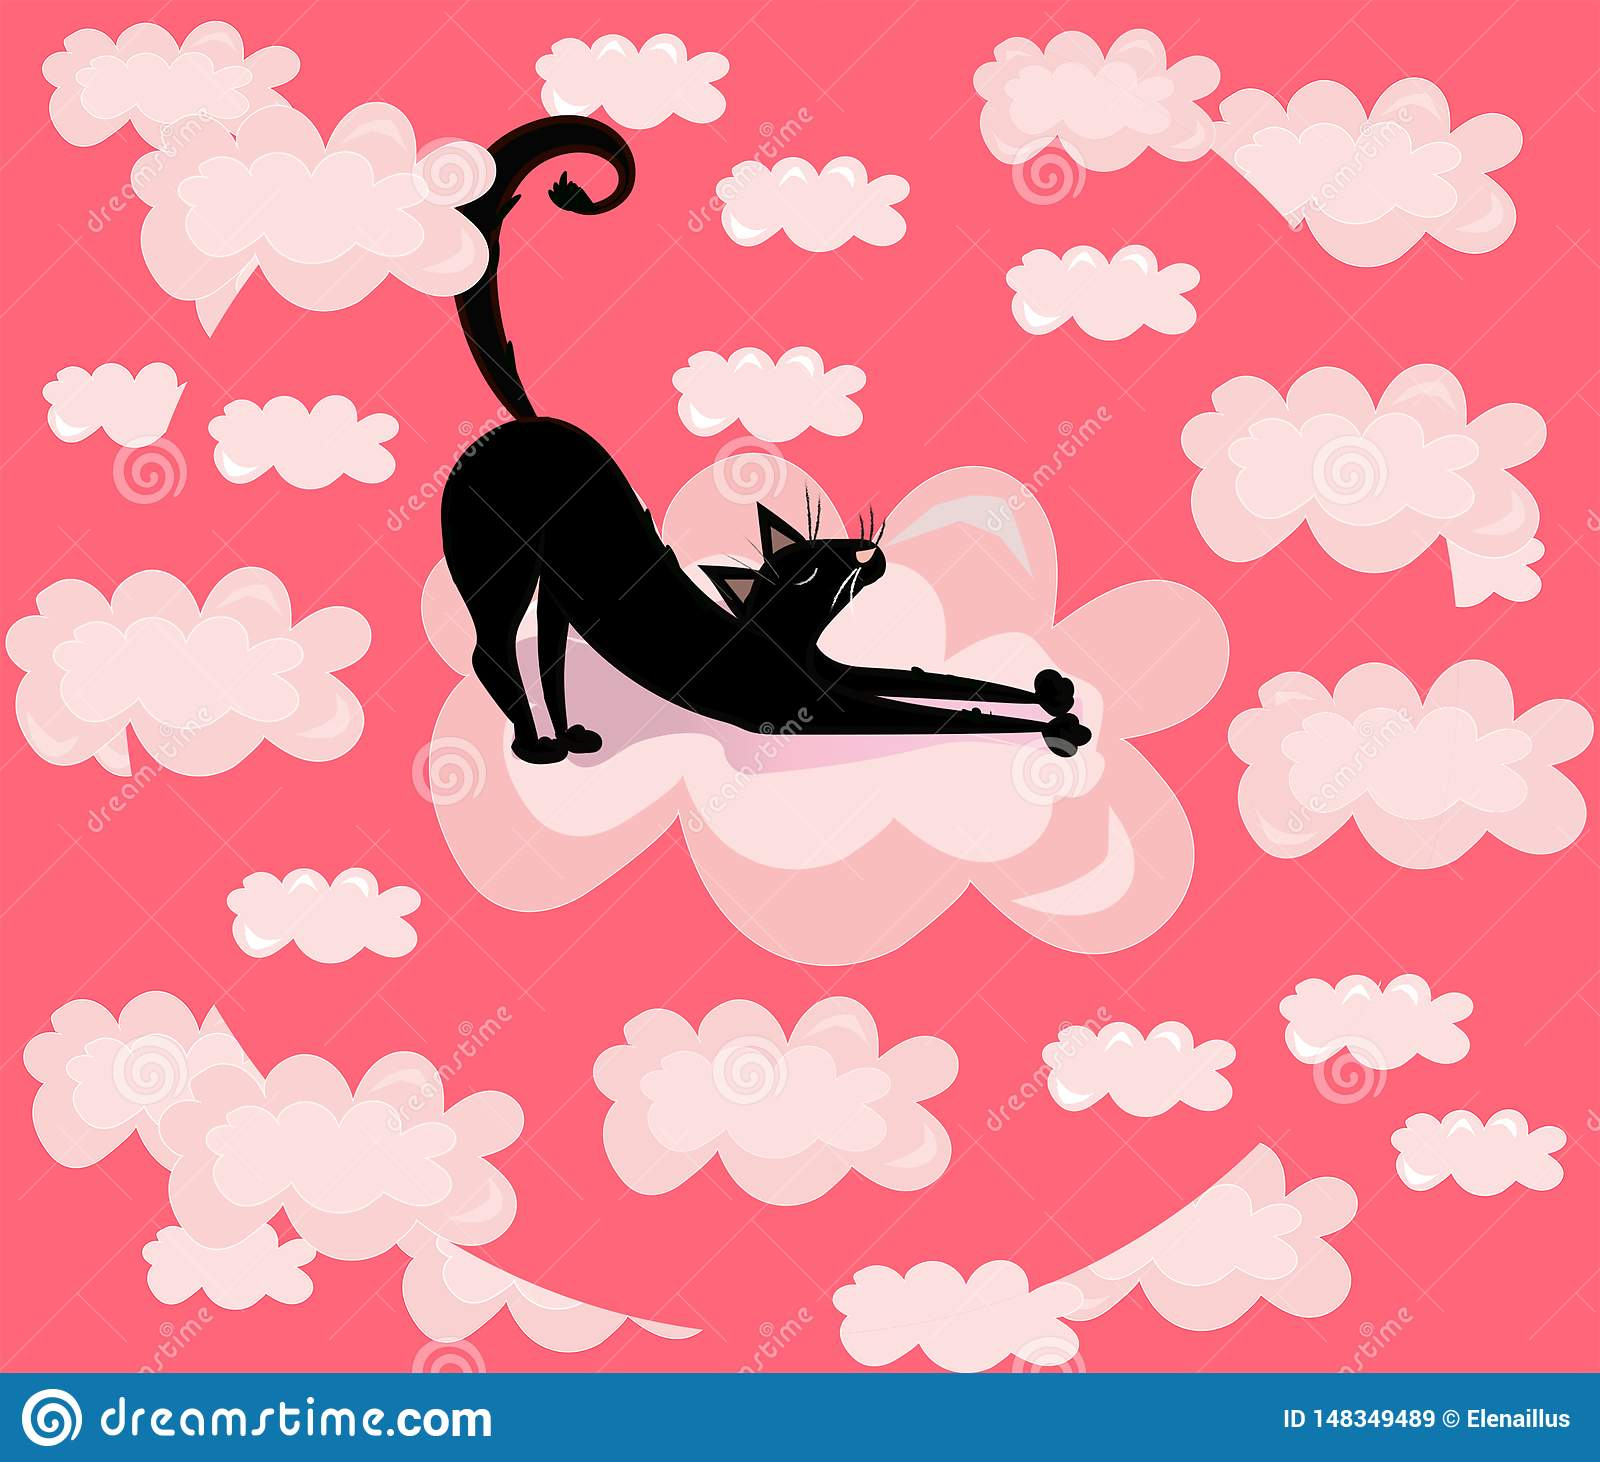 Vector cute, funny, cartoon illustration, print with black cat in the pink clouds.